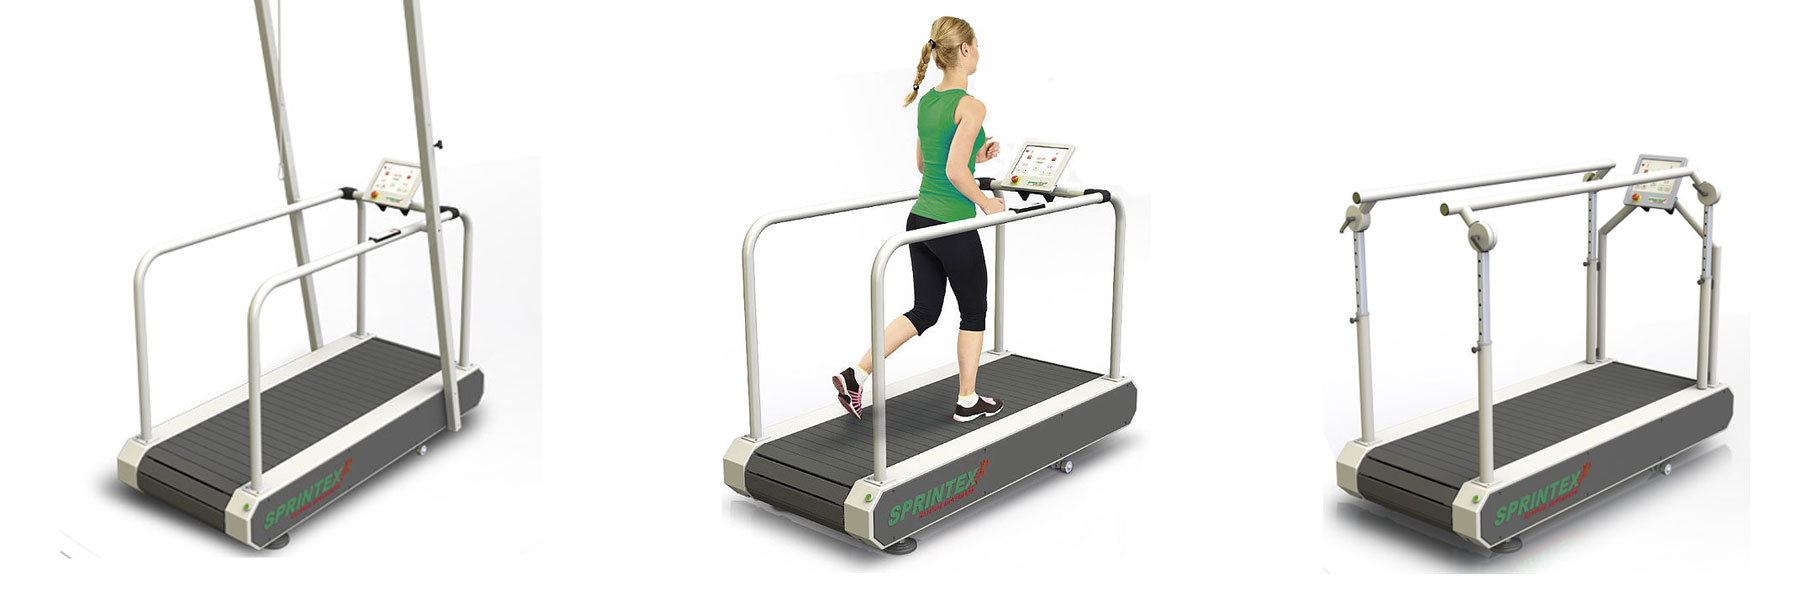 Sprintex Ortho Treadmill for Running Gait Analysis